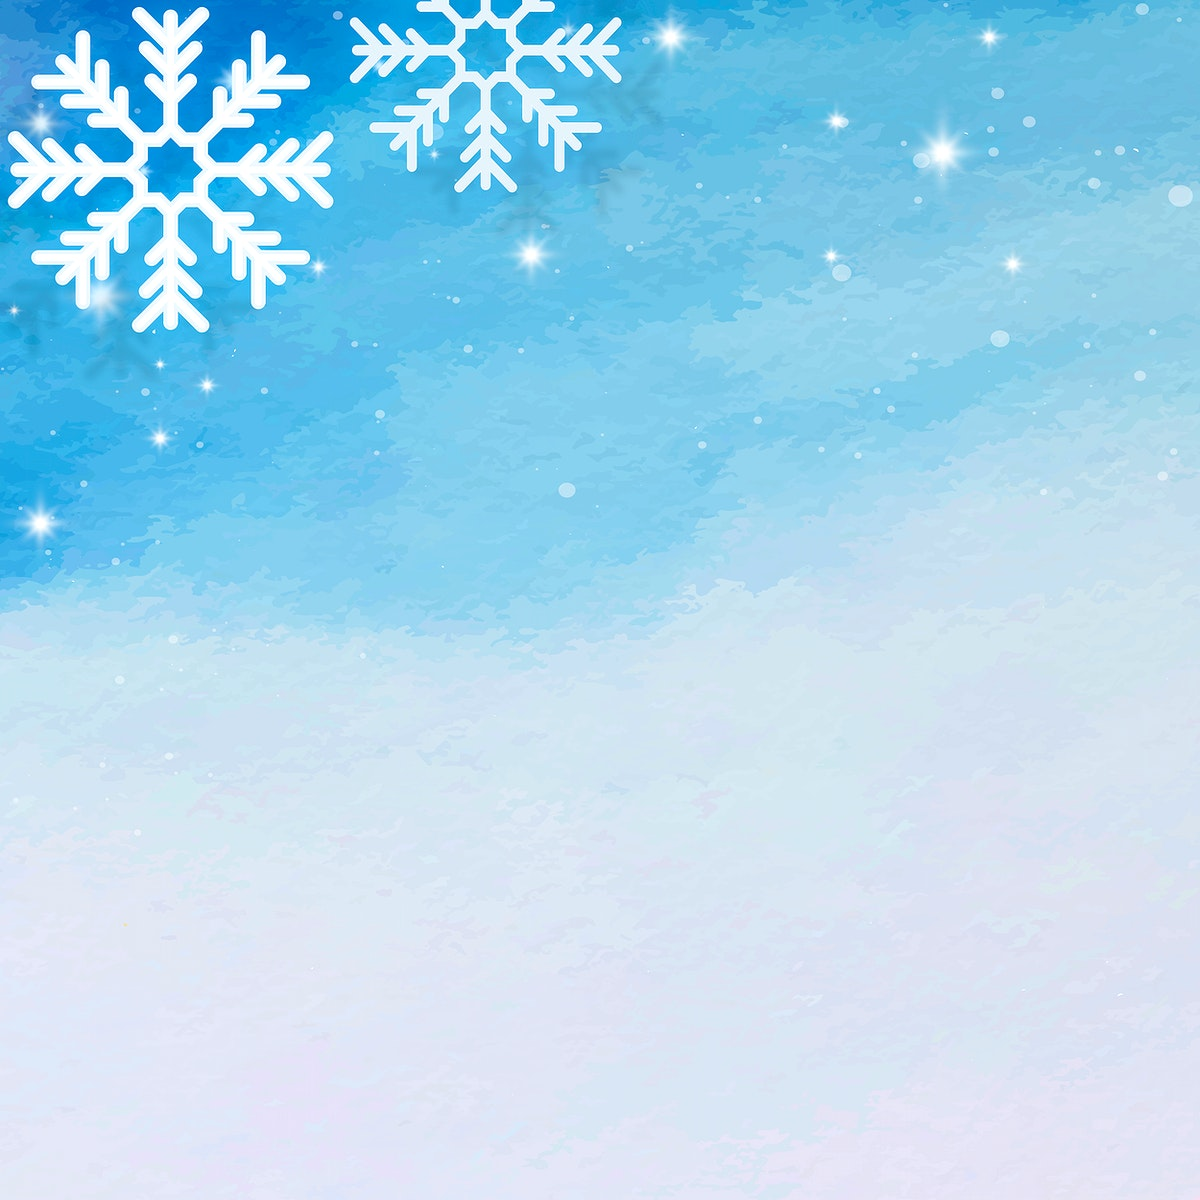 Snowflake pattern on blue background vector